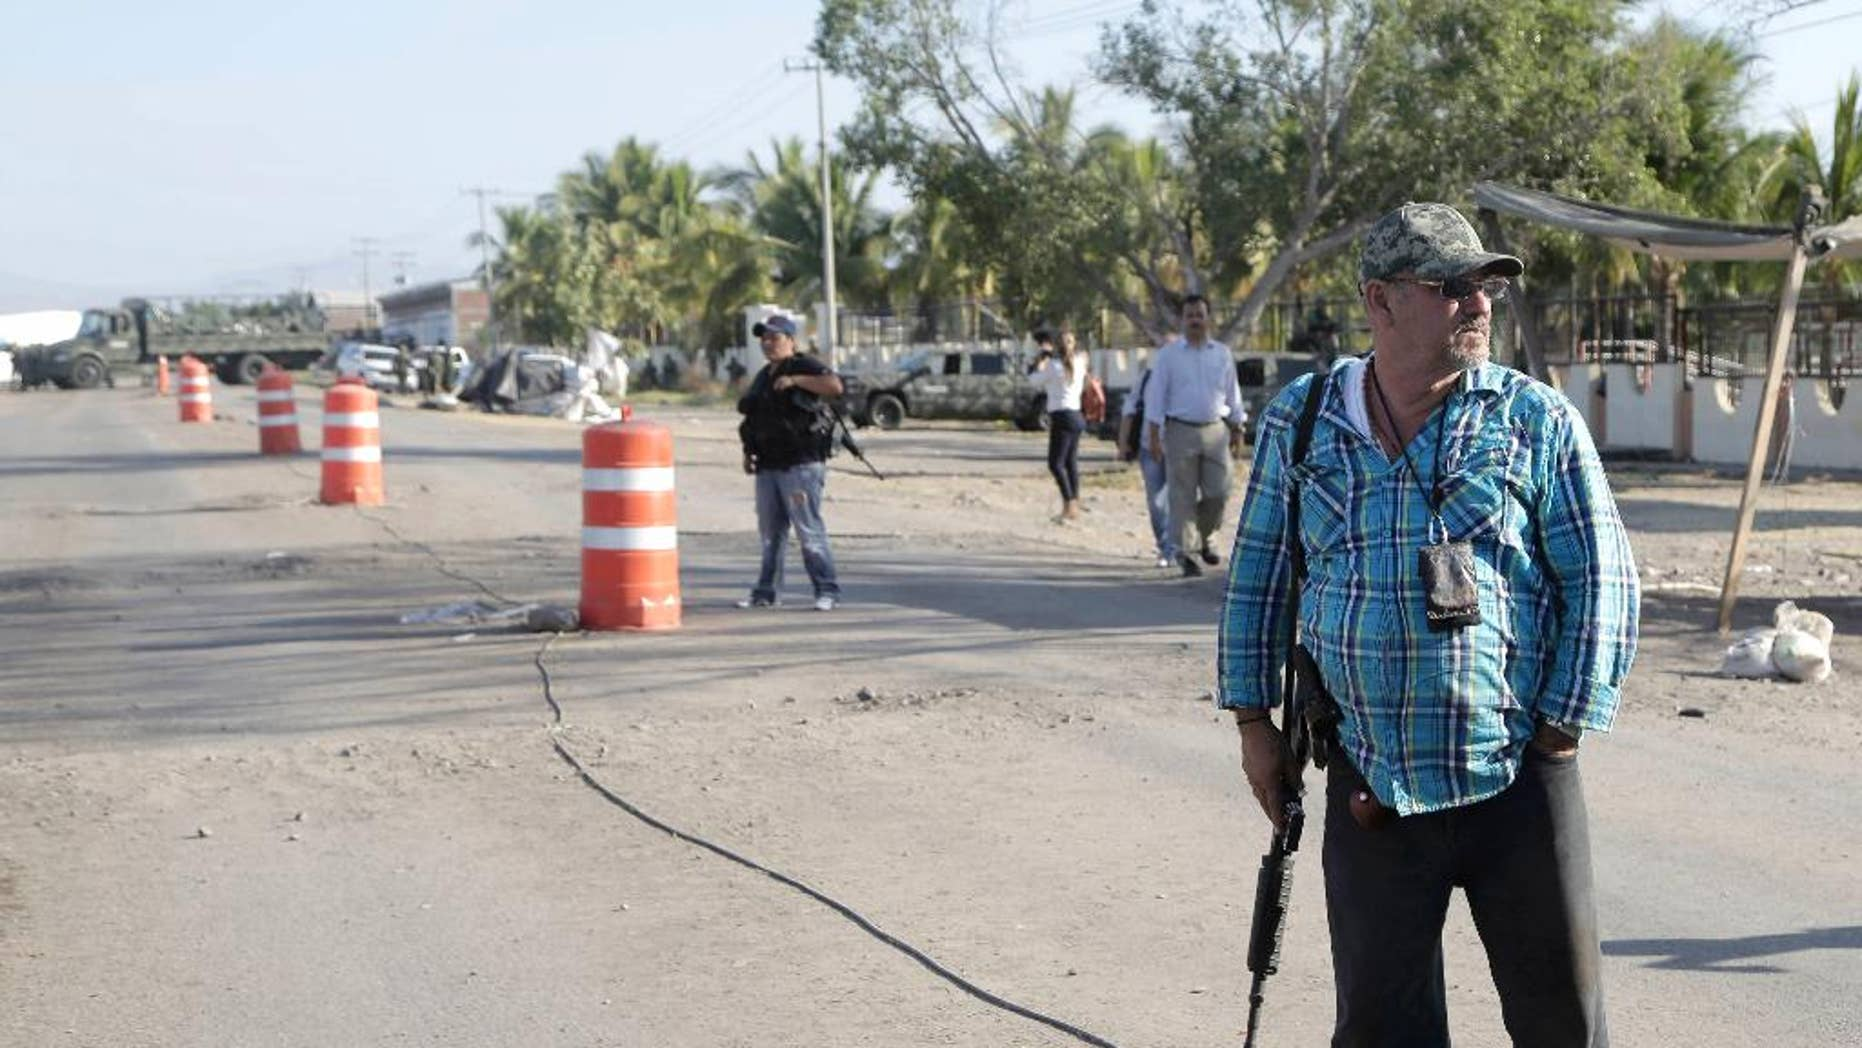 "FILE - In this Dec. 17, 2014, file photo, the leader of a local self-defense group, Hipolito Mora, right, stands armed at the entrance of the town of La Ruana, a day after a clash between two rival ""self-defense"" groups outside of the town, in the state of Guerrero, Mexico. Federal security commissioner in Michoacan, Alfredo Castillo said Tuesday Dec. 30, 2014, that two leaders and nearly three dozen members of rural self-defense forces in the western state of Michoacan who were involved in Dec. 17 clash, have turned themselves in to authorities. (AP Photo/Gustavo Aguado, File)"